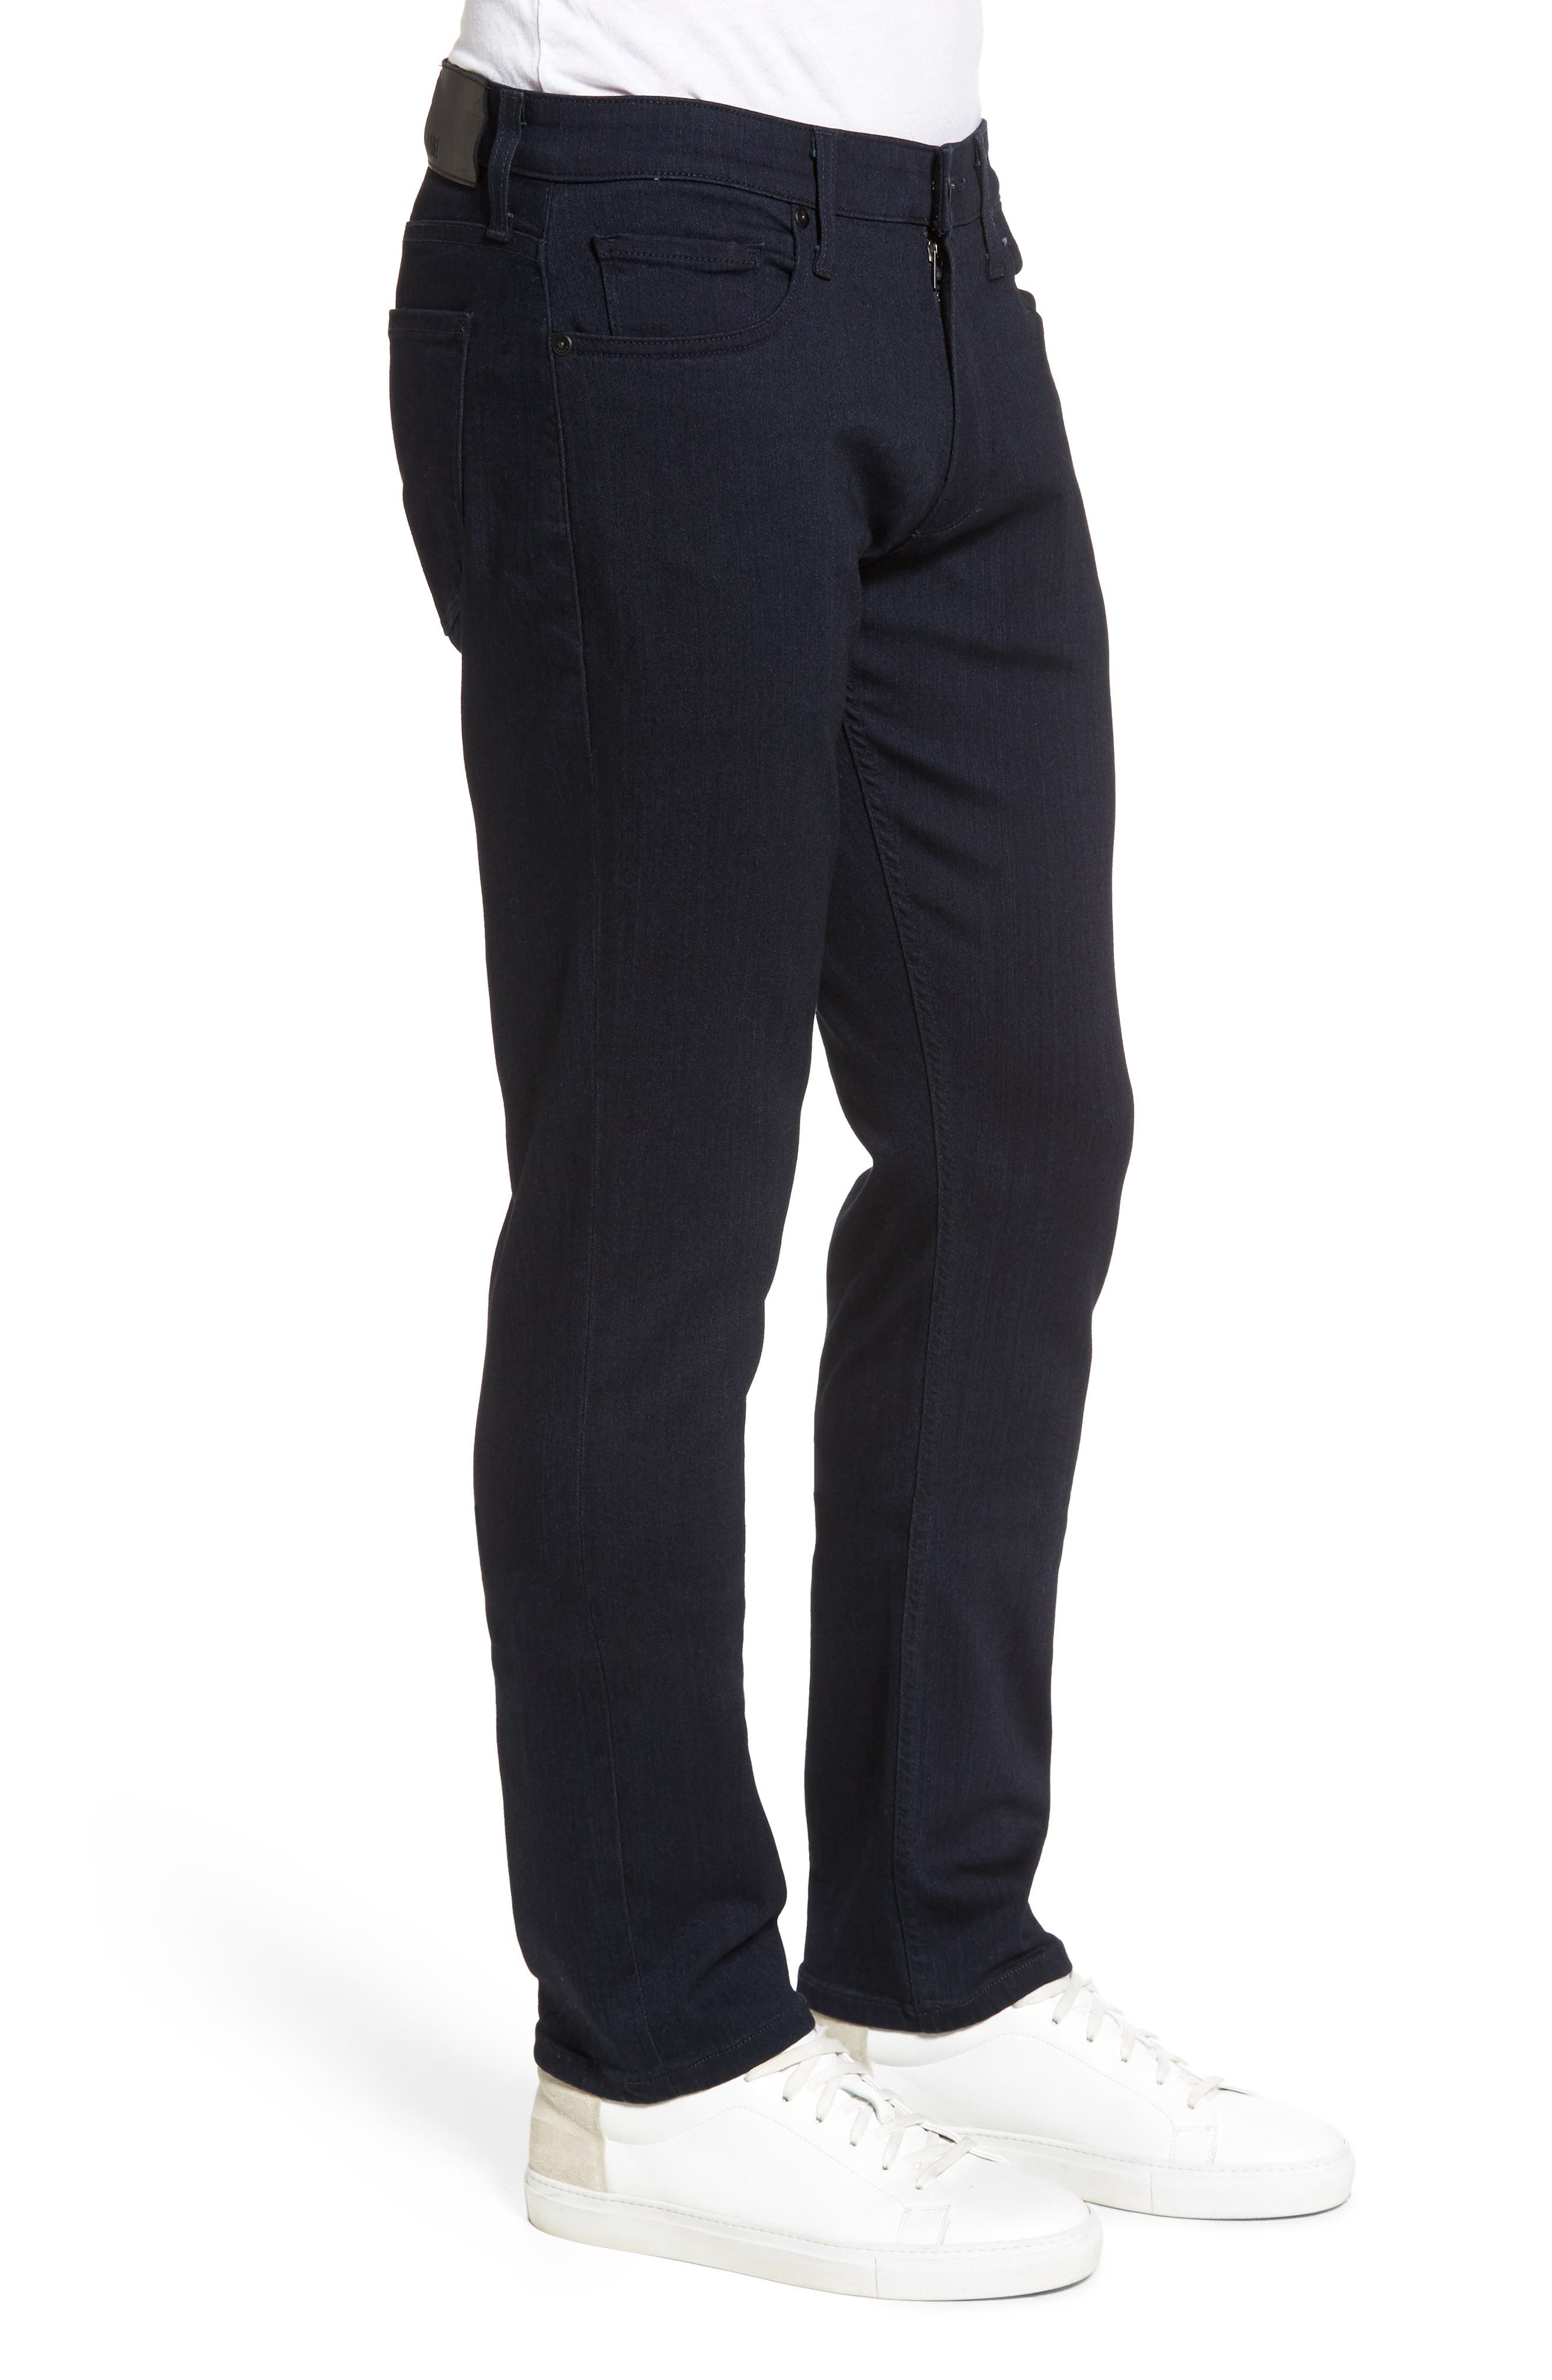 PAIGE, Transcend - Federal Slim Straight Leg Jeans, Alternate thumbnail 4, color, INKWELL